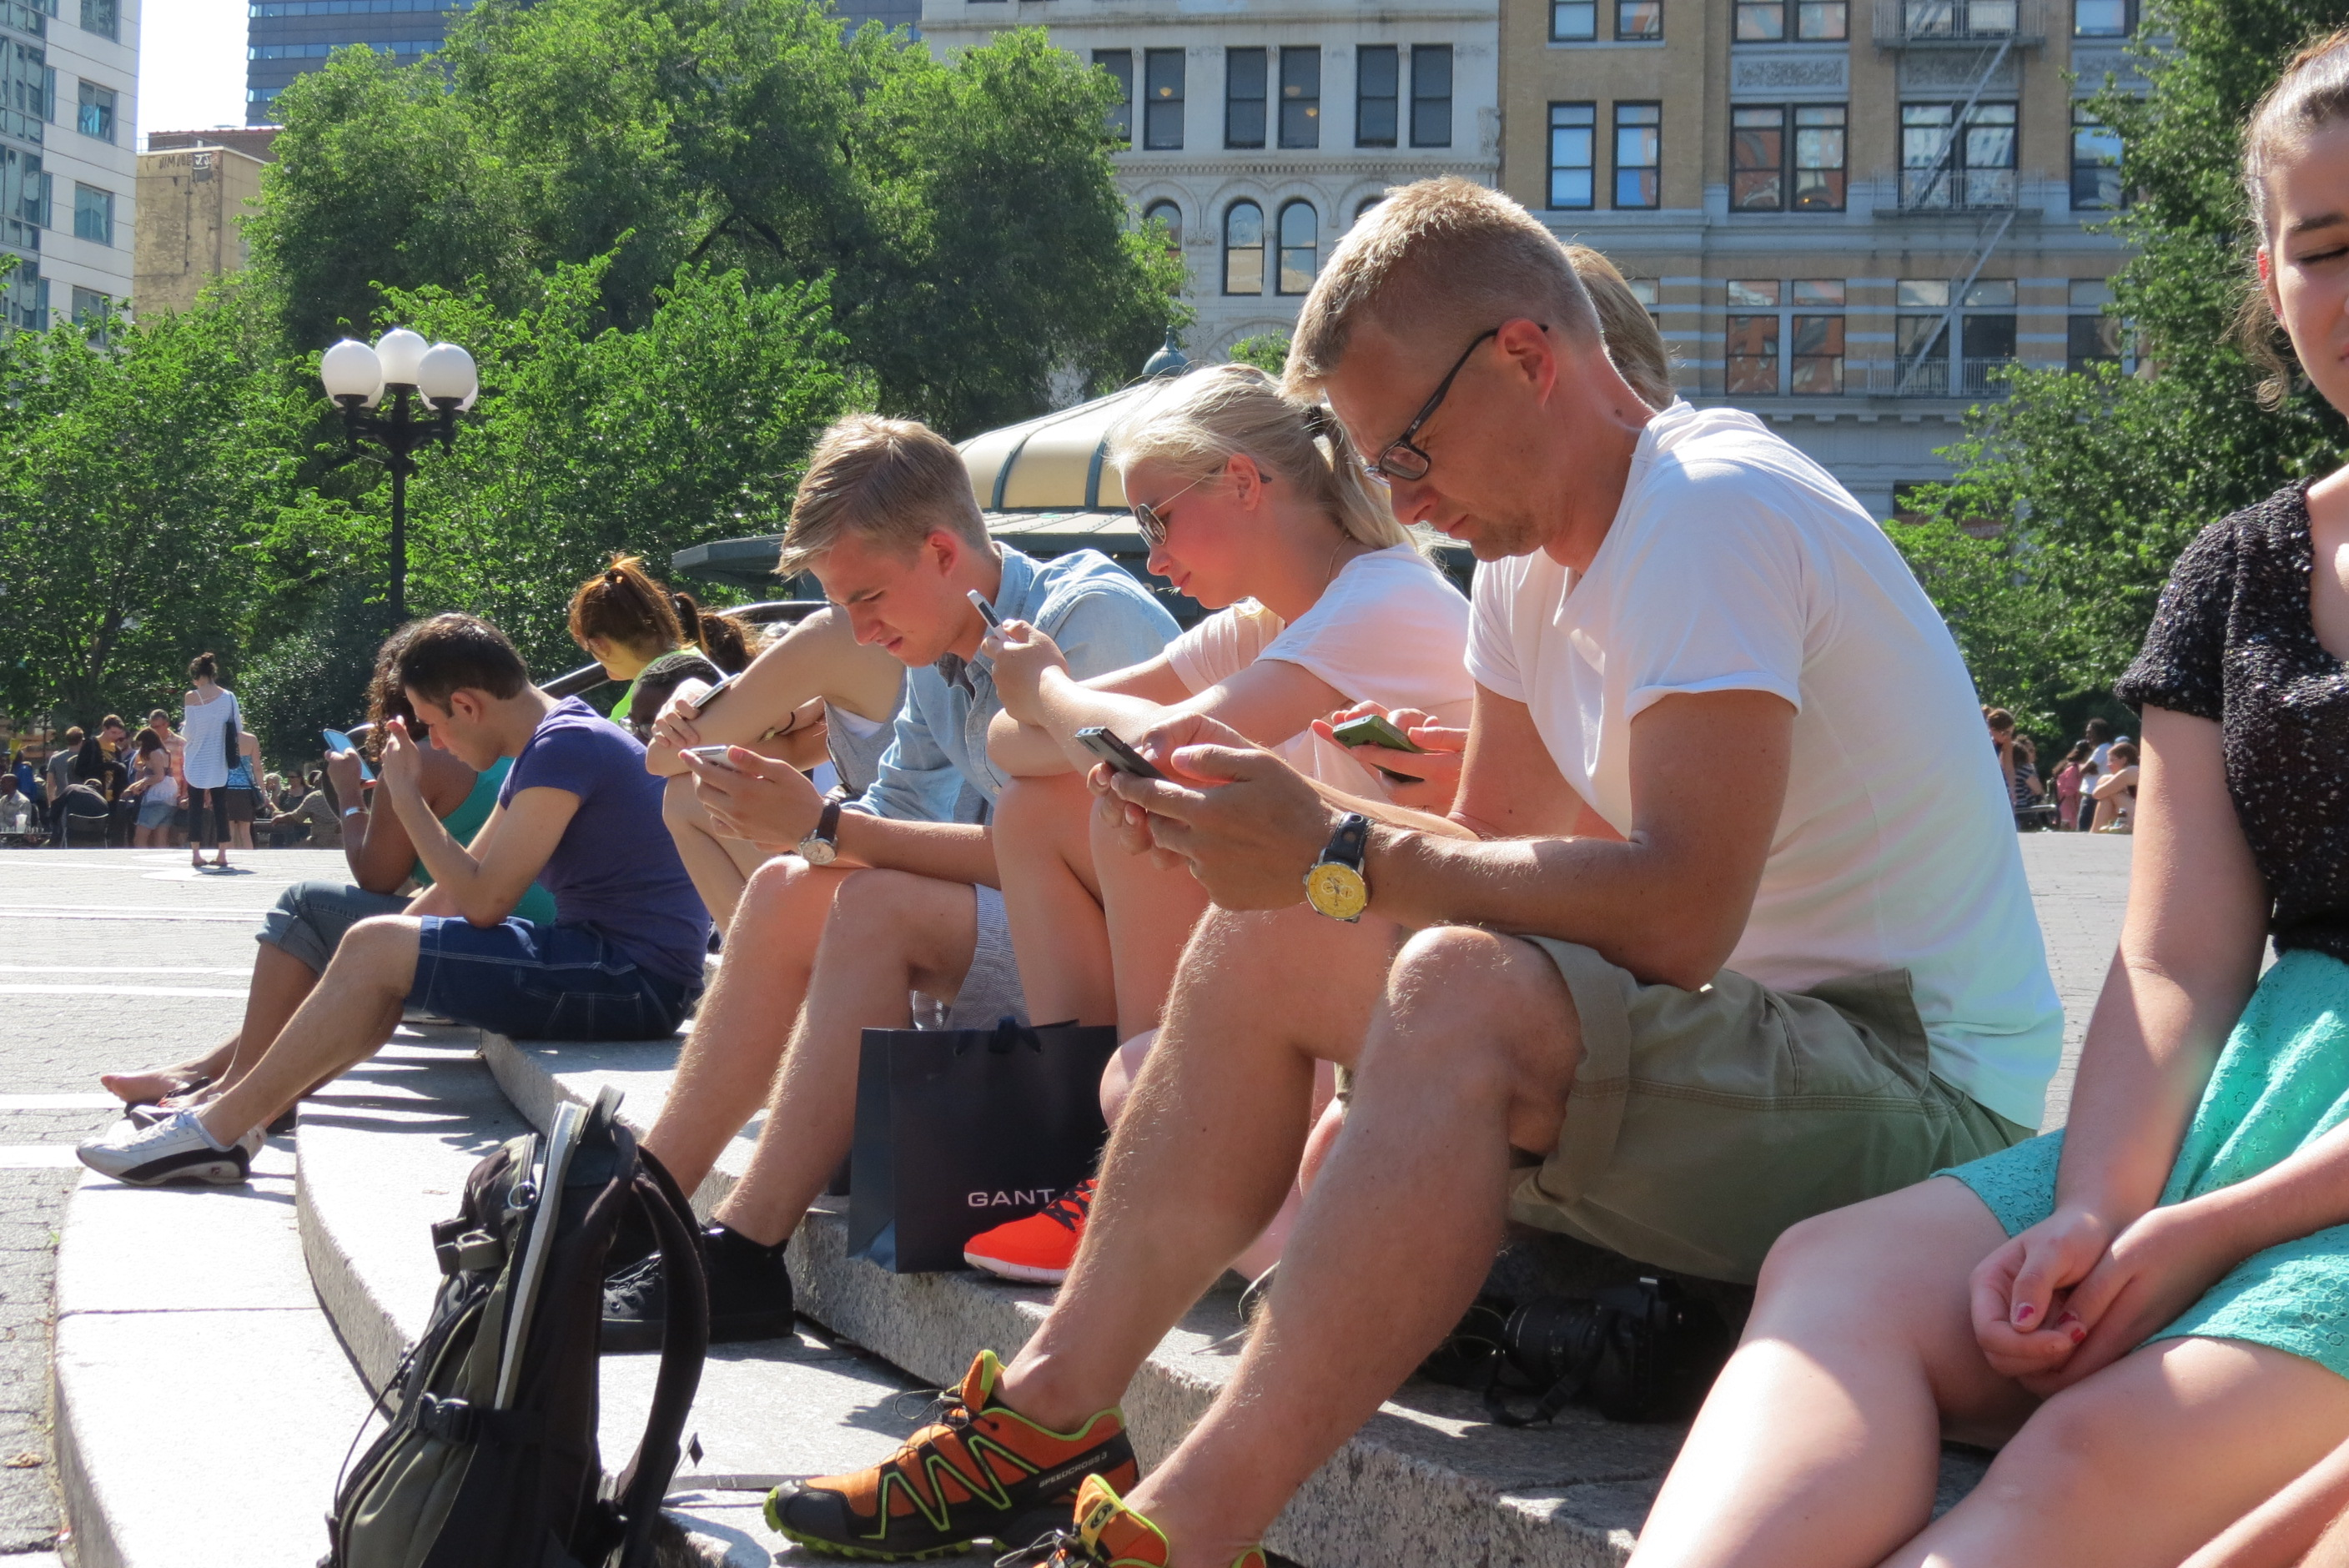 A tourist family in New York City ignore each other & stare at their phones